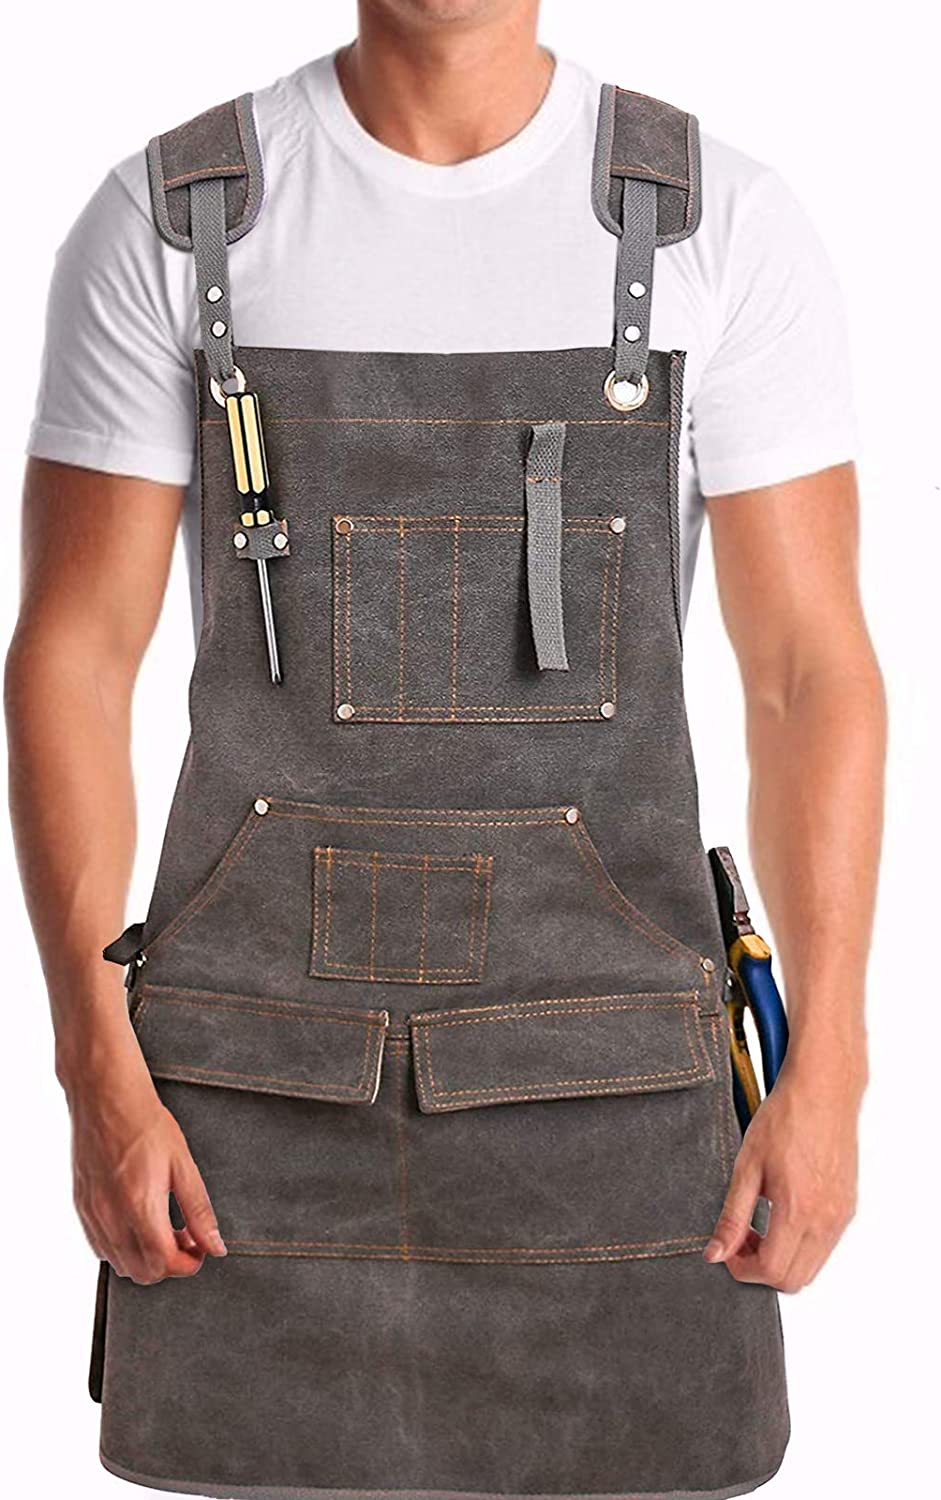 Buy MDHAND Woodworking Apron, Heavy Duty Waxed Canvas Work Apron ...